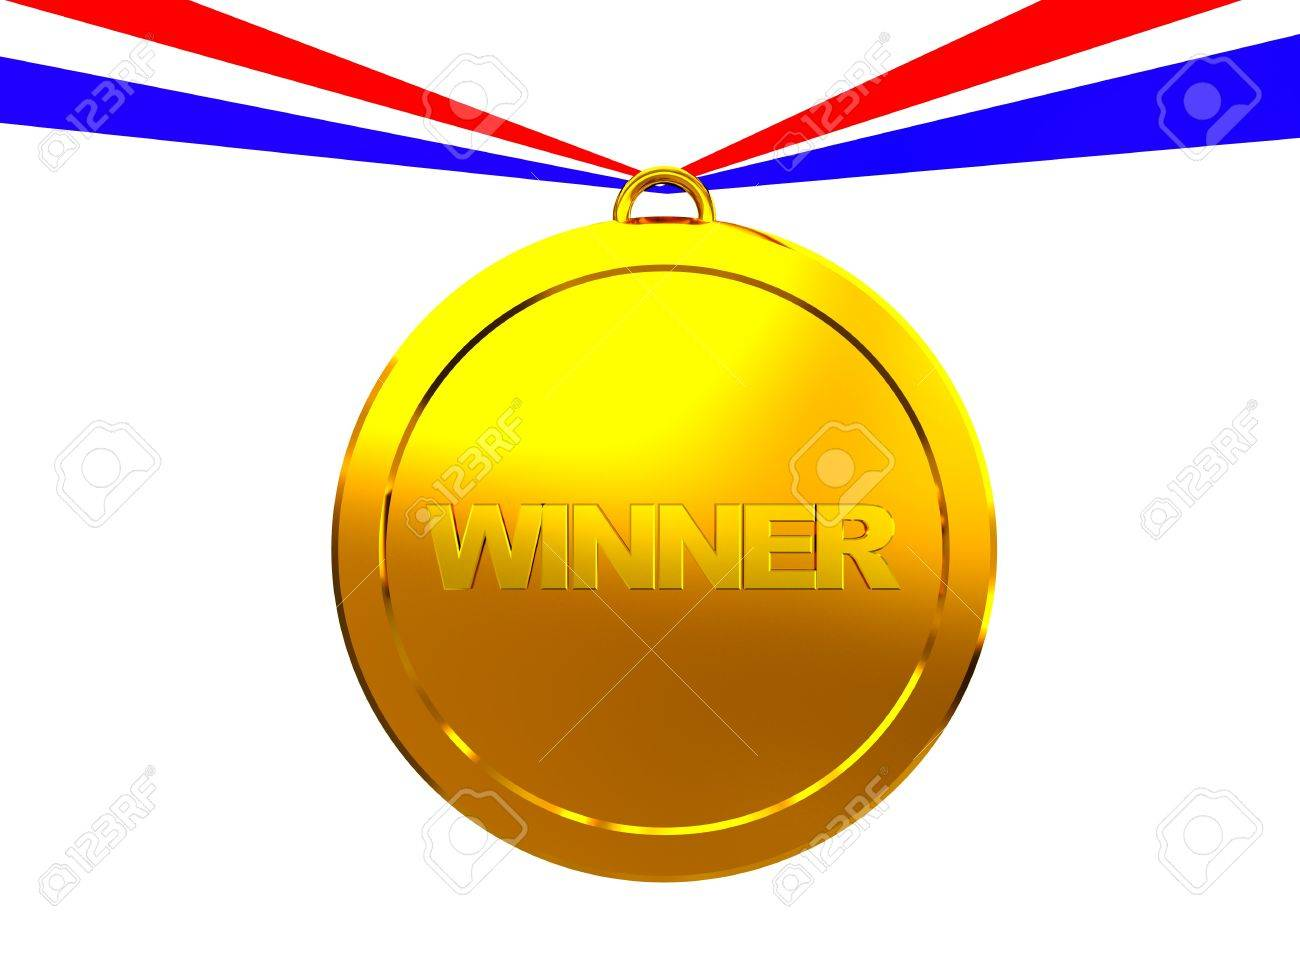 3d illustration of golden medal with 'winner' text Stock Photo - 4512628